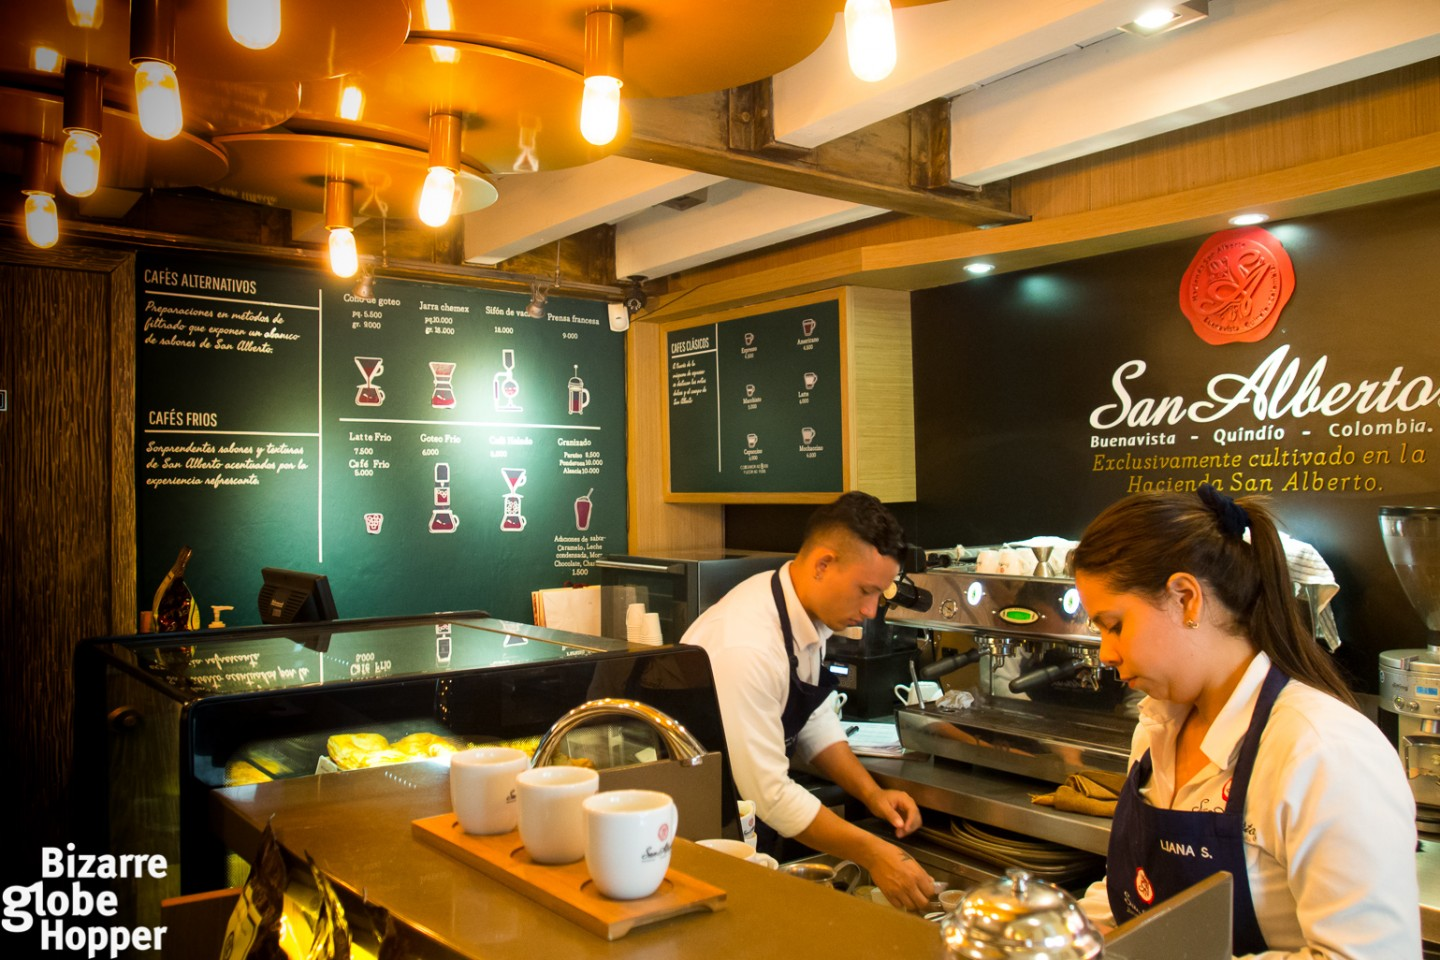 Café San Alberto inside the old town of Cartagena caters your specialty coffee needs with their super premium, wet-processed beans